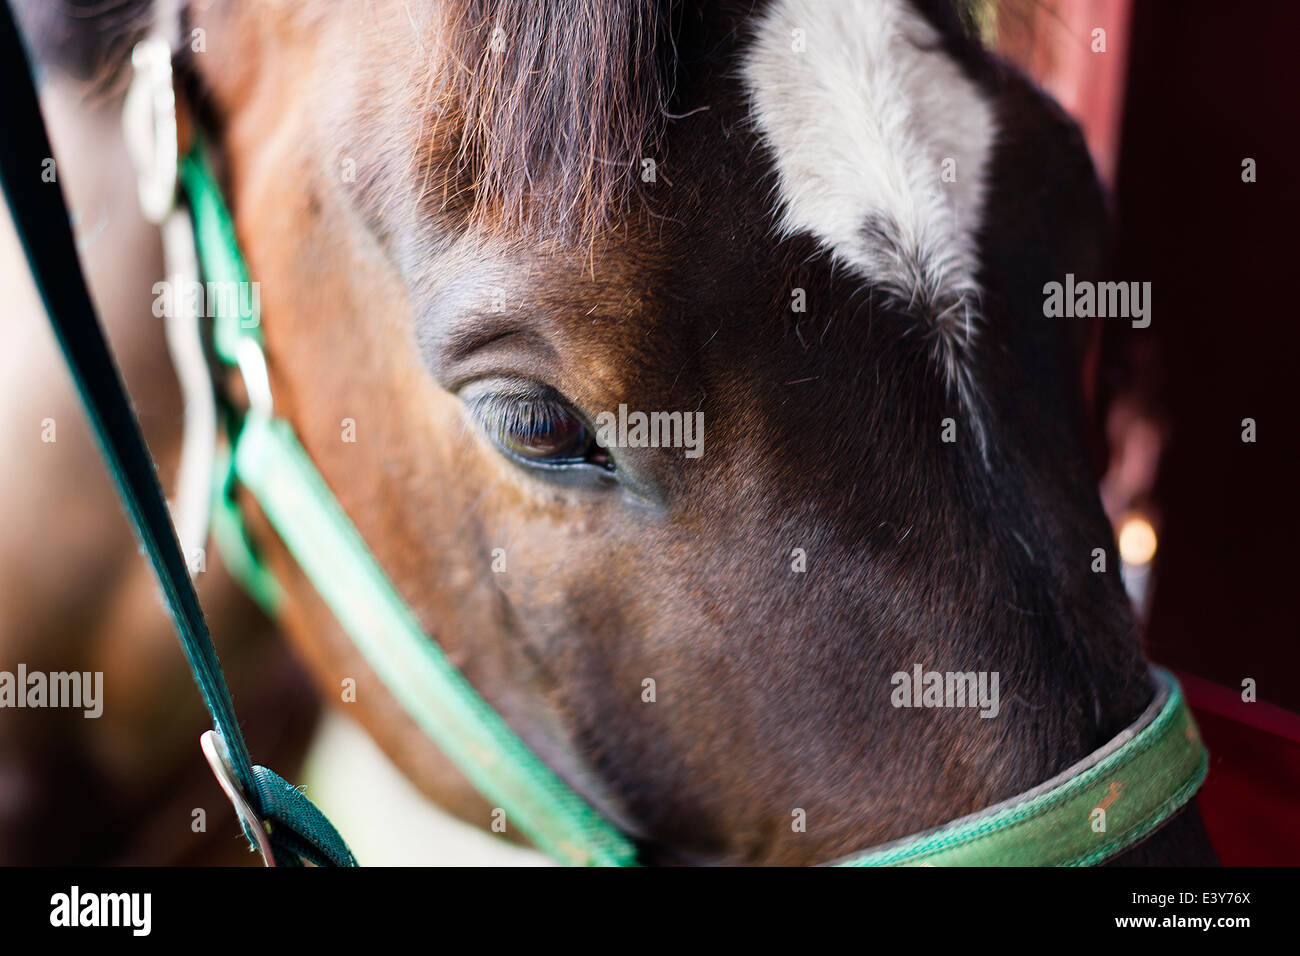 Close up of horse - Stock Image